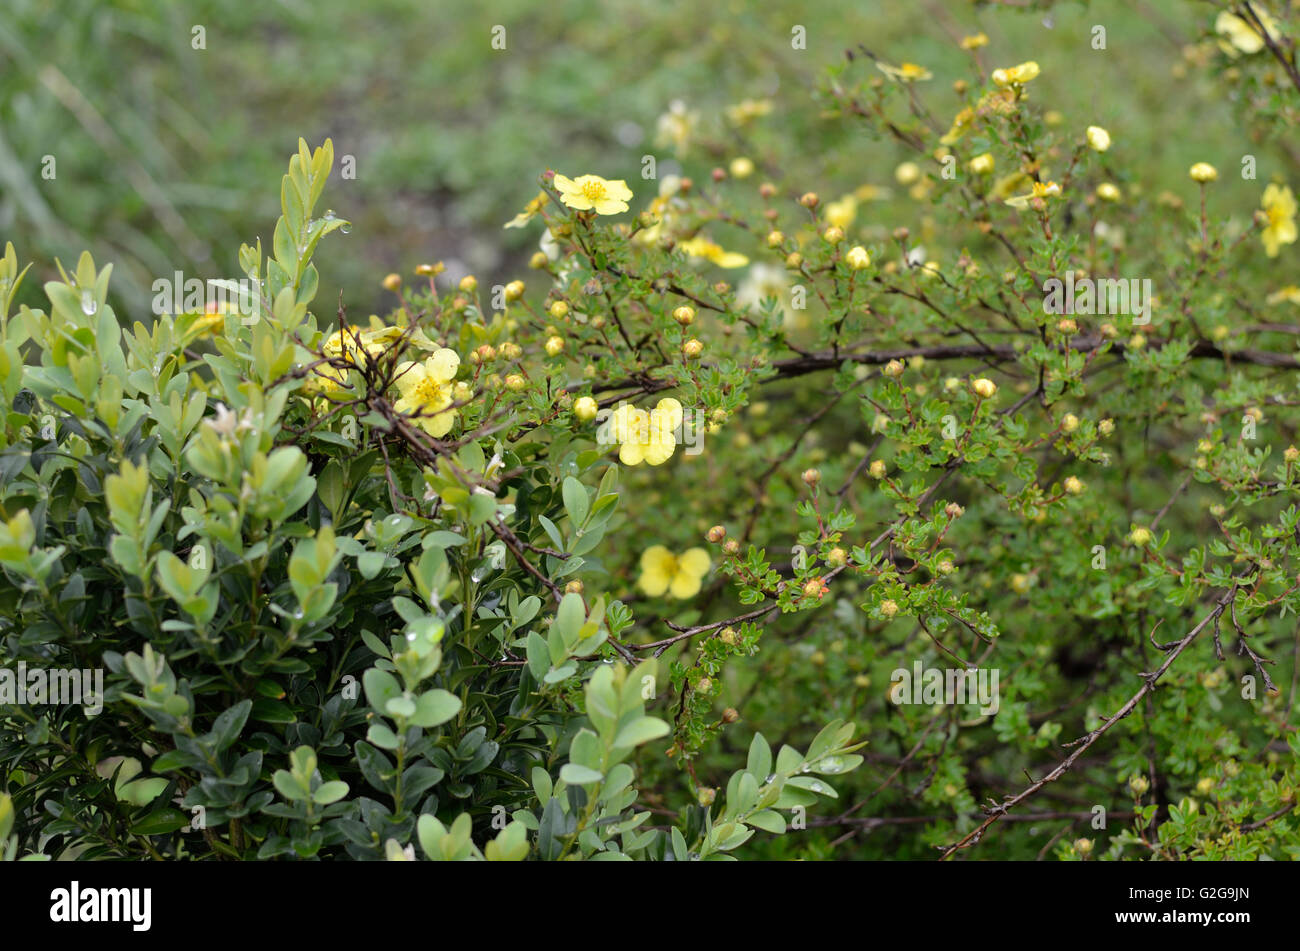 Bush with small yellow flowers in spring time stock photo royalty bush with small yellow flowers in spring time dhlflorist Gallery